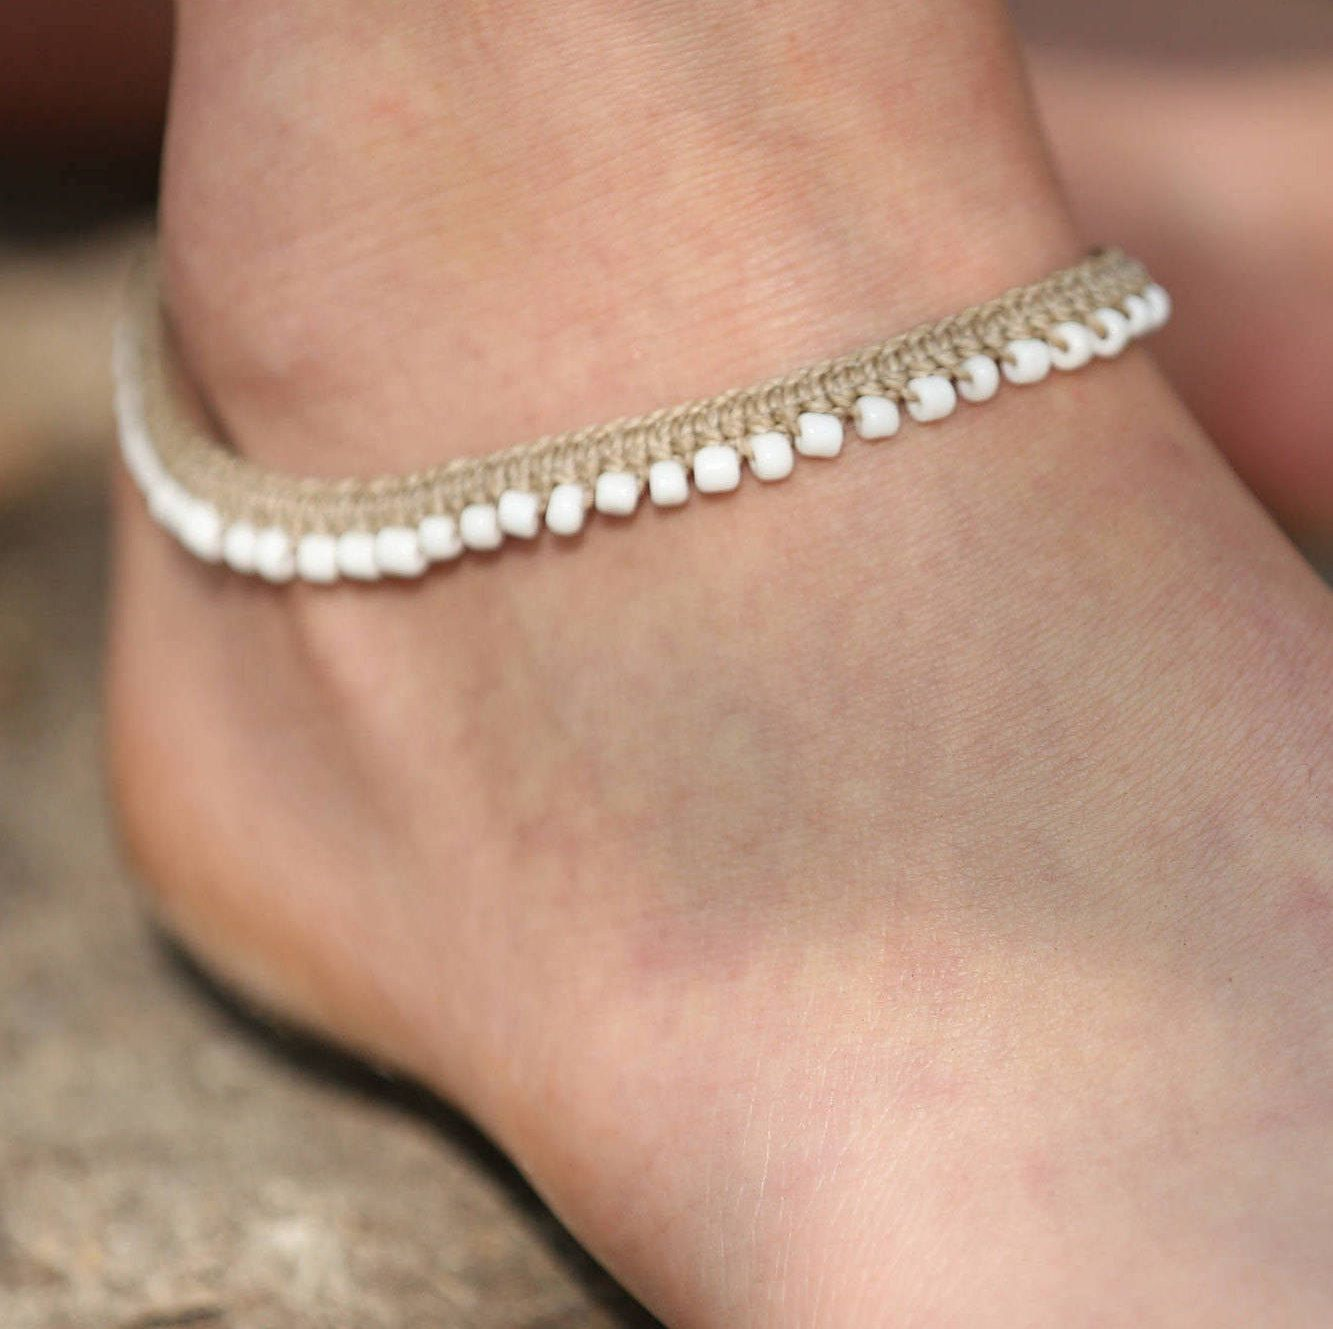 for il etsy great anklets silver her market anklet whith jingle simple bells beach or ihua bracelet